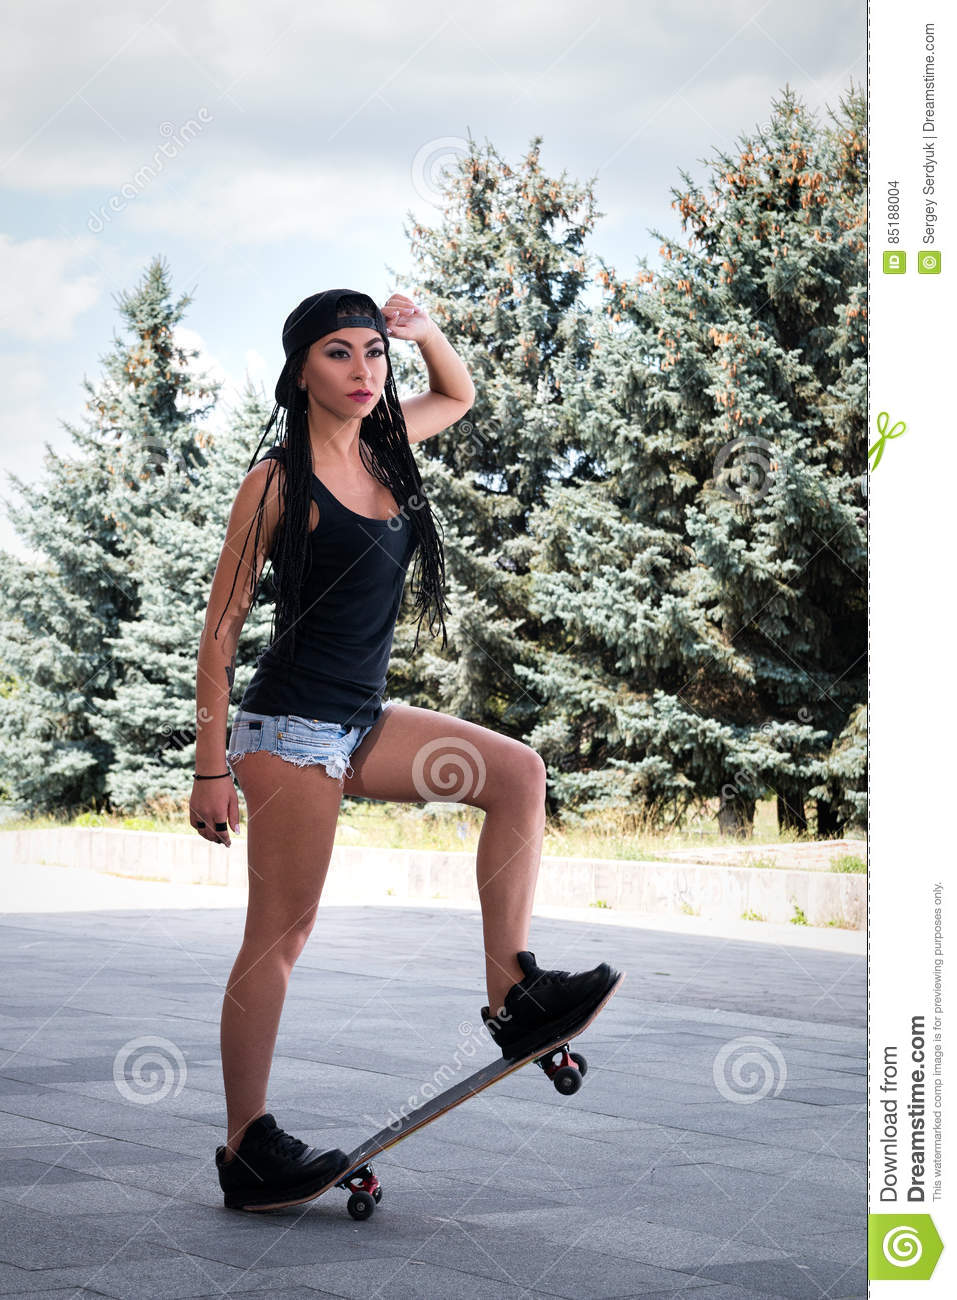 girl skateboard Sexy on